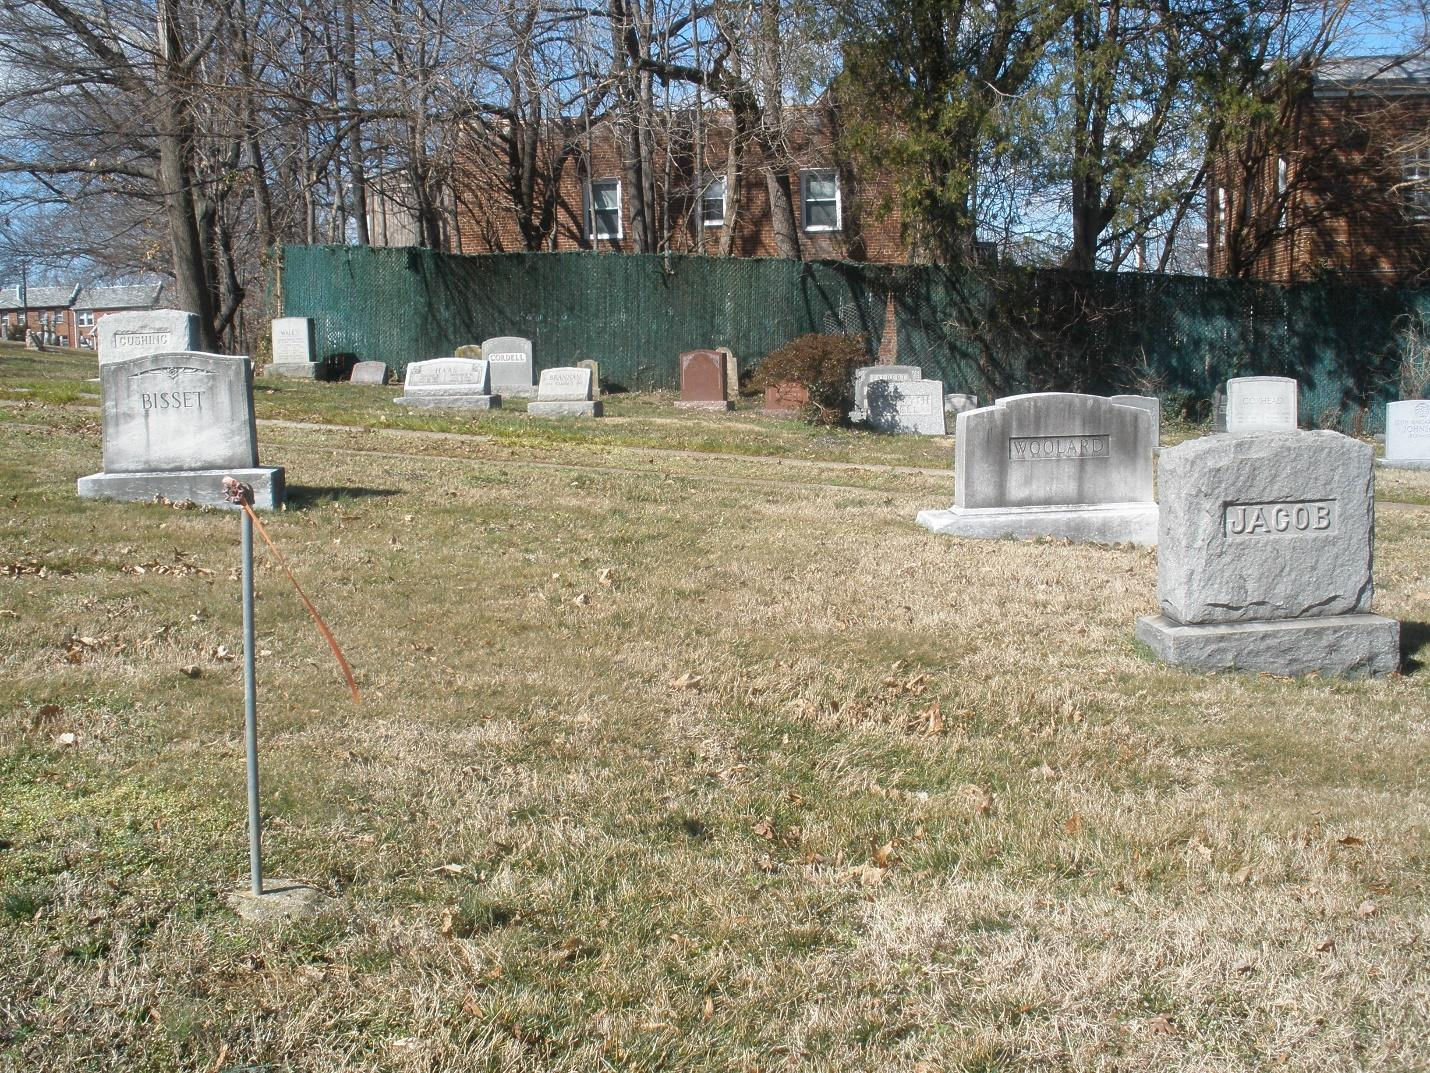 C:\Users\owner\AppData\Local\Microsoft\Windows\INetCache\Content.Word\Rock Creek Cemetary 1 (Feb 23, 2012).jpg